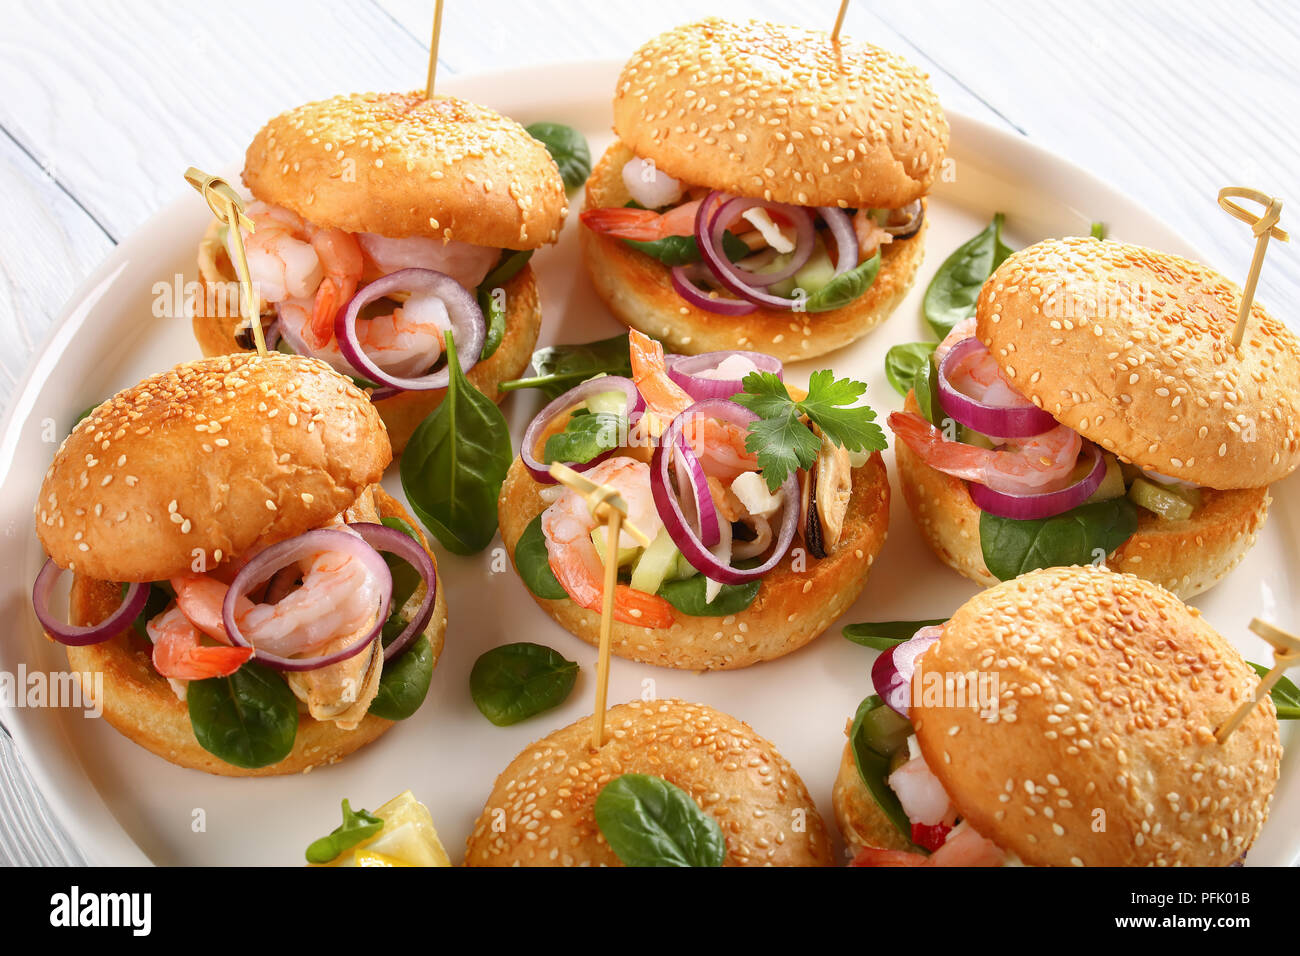 delicious grilled juicy burgers pinned with bamboo skewers or pinchos with seafood, red onion and greens on white platter on wooden table, spain cuisi - Stock Image